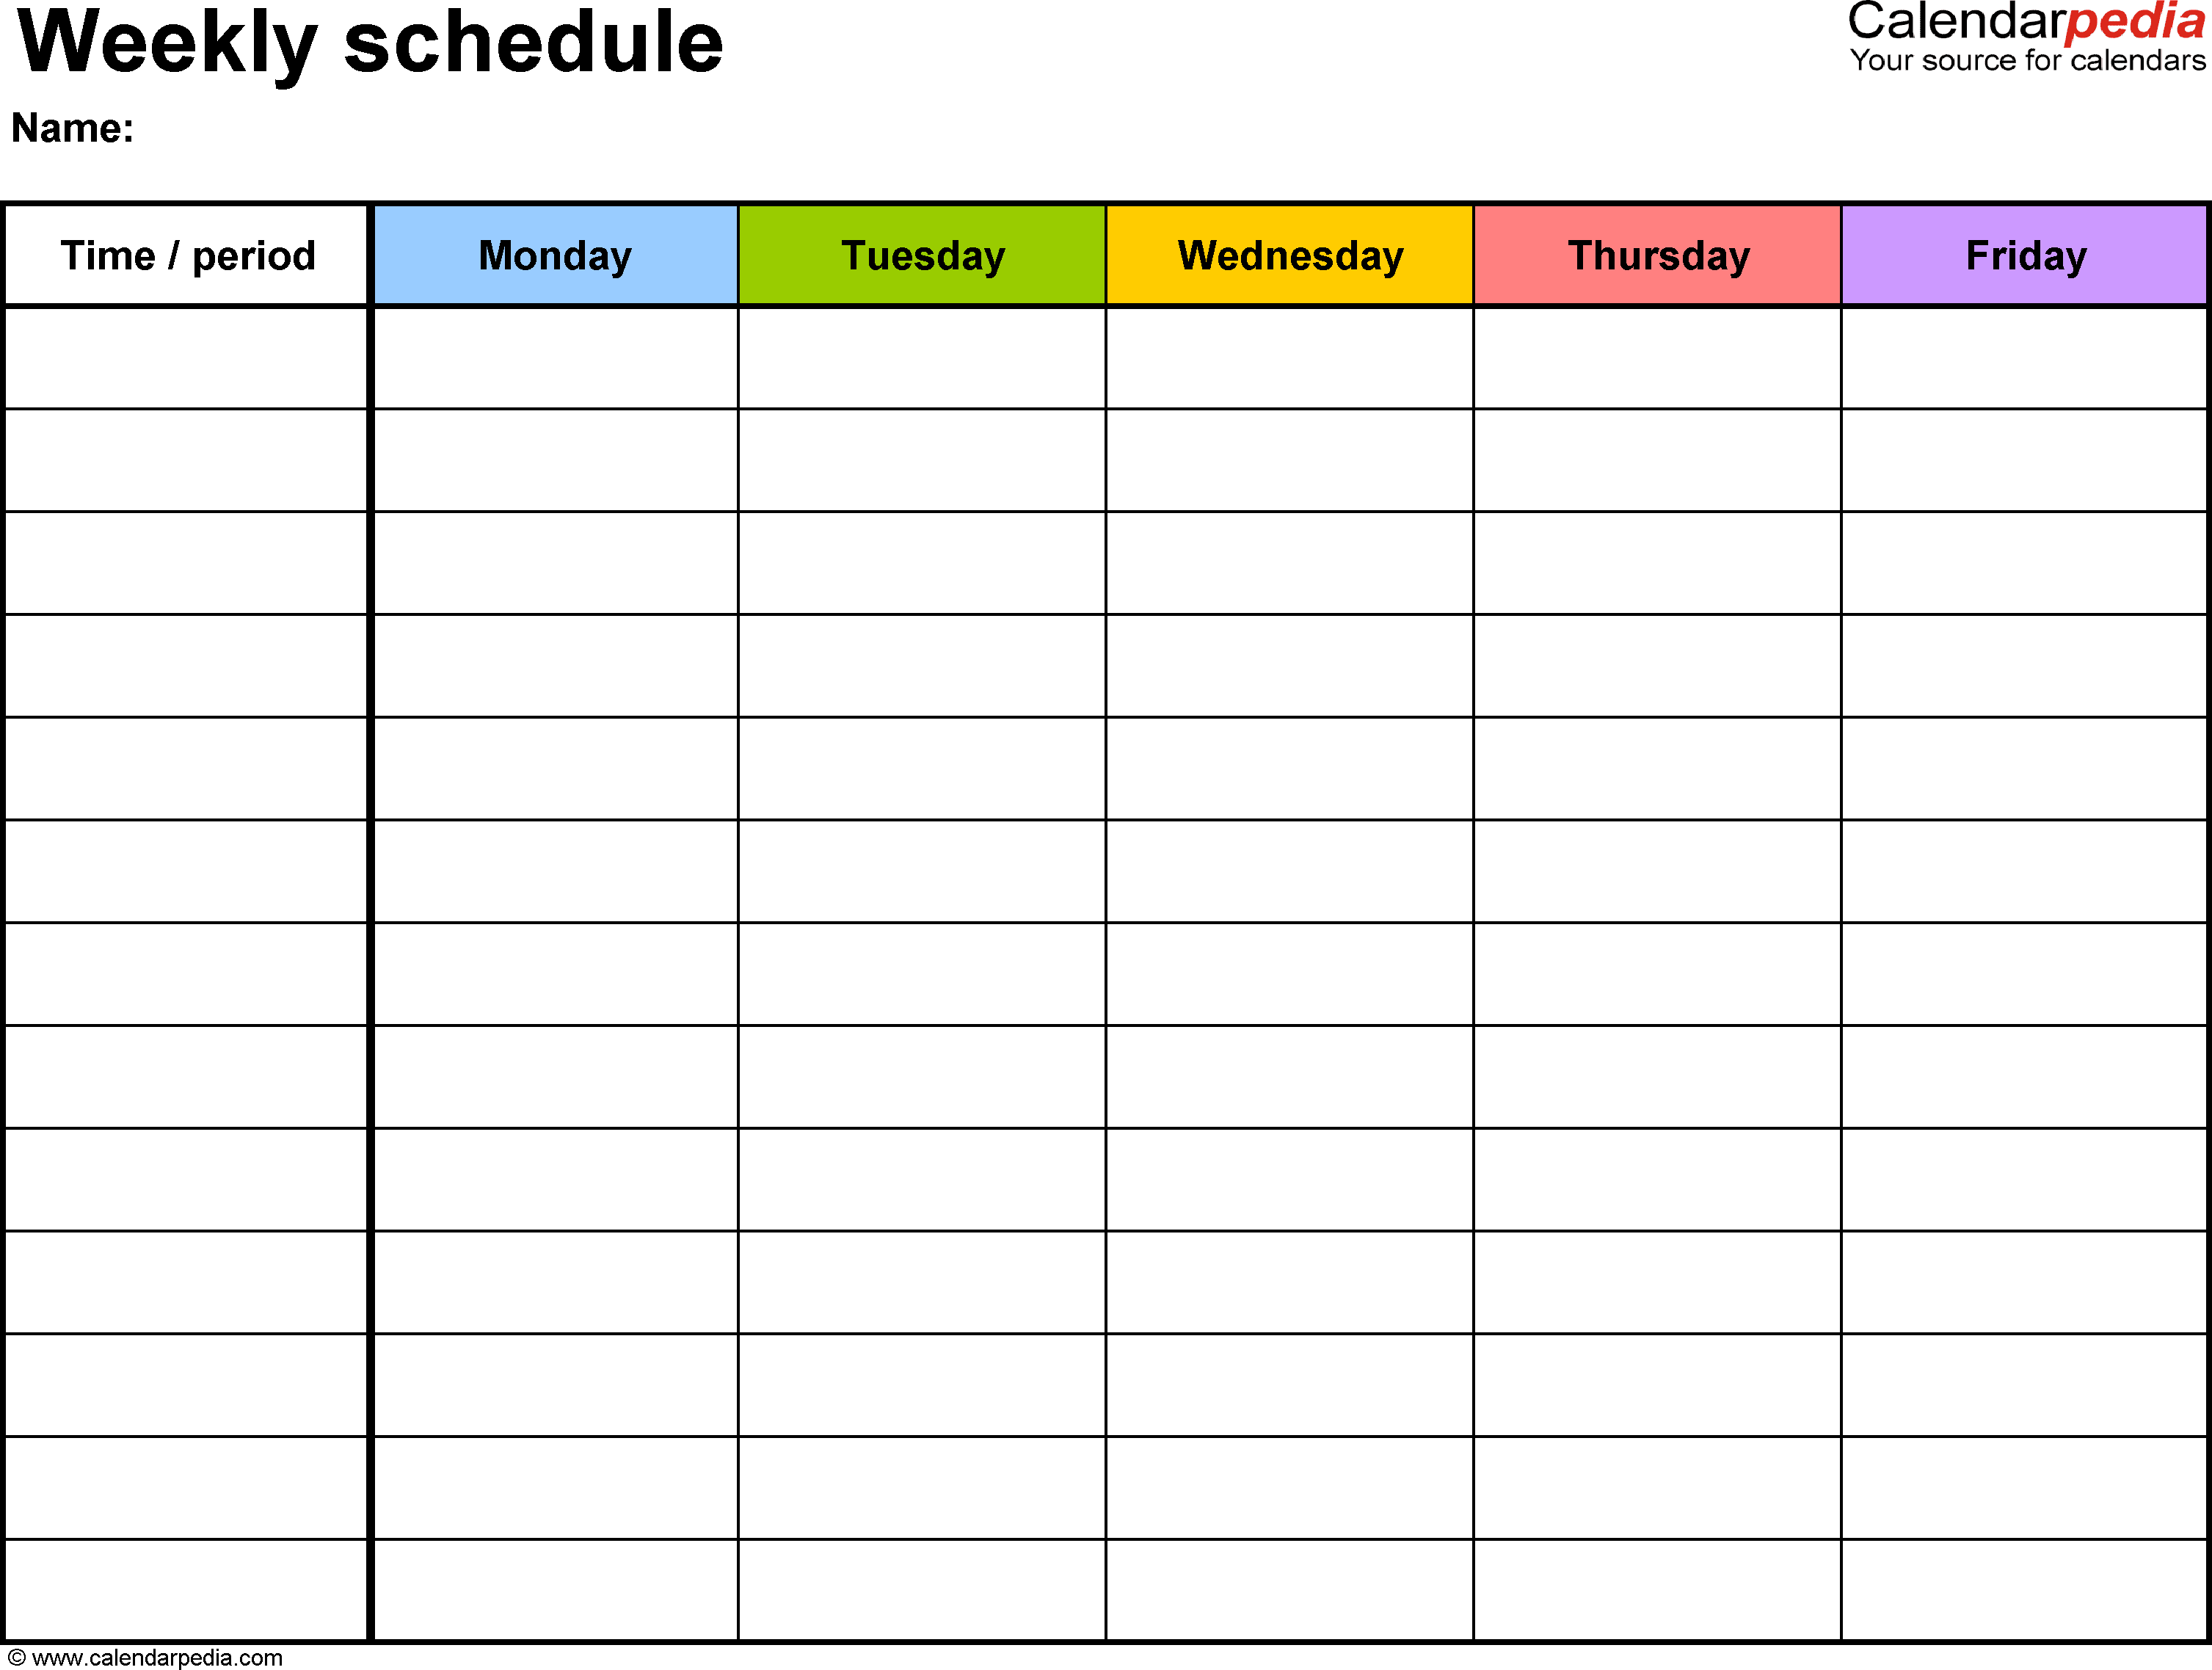 Time management template: weekly schedule. Going to give this a